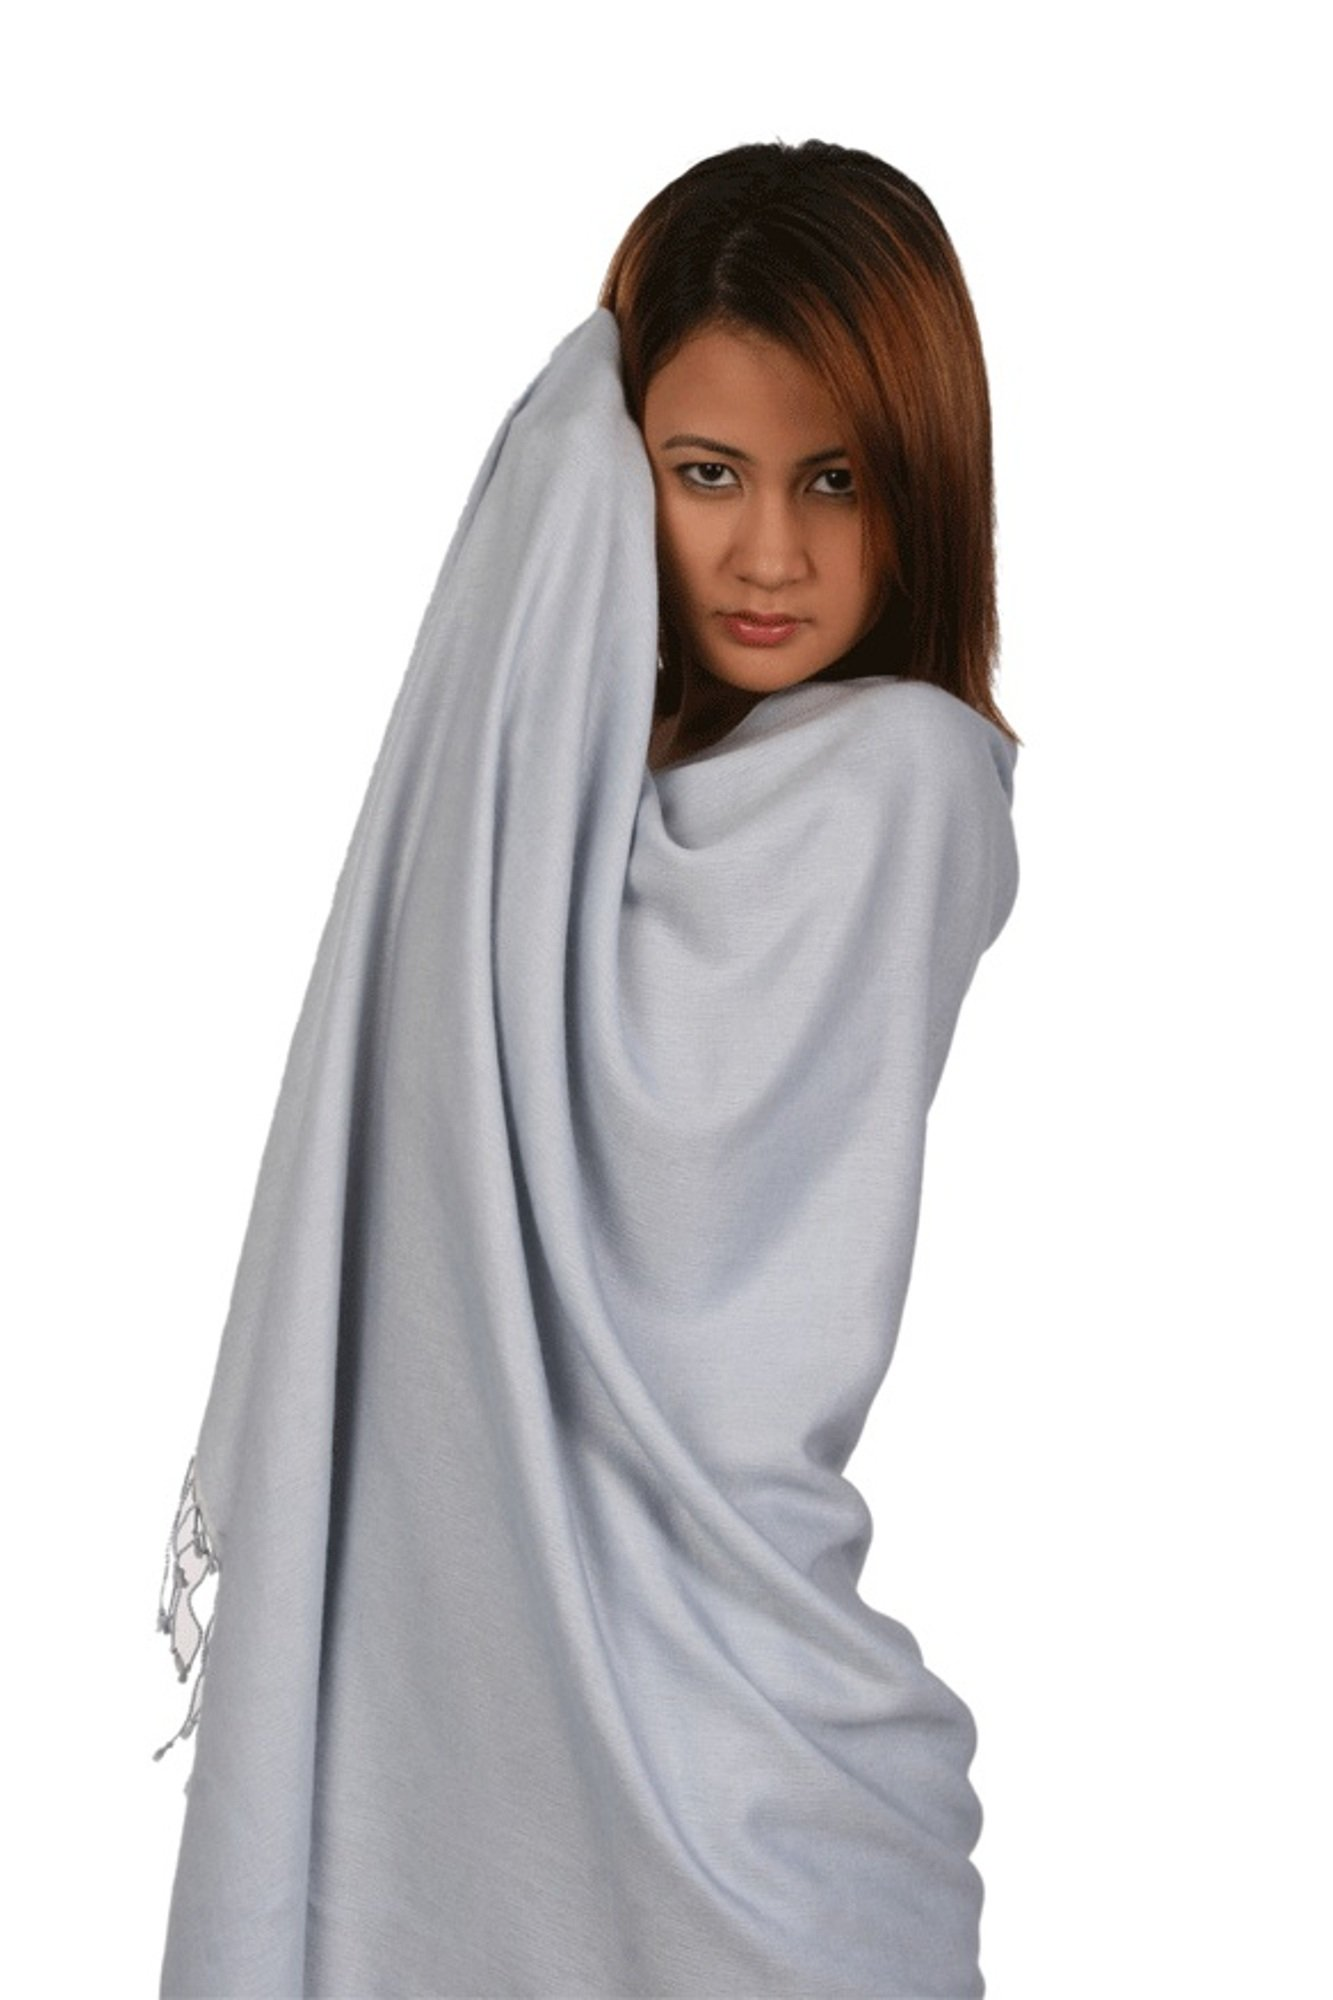 Scarf/Shawl/Wrap/Stole/Pashmina Shawl in solid color from Cashmere Pashmina Group (Regular Size) - Silver Grey